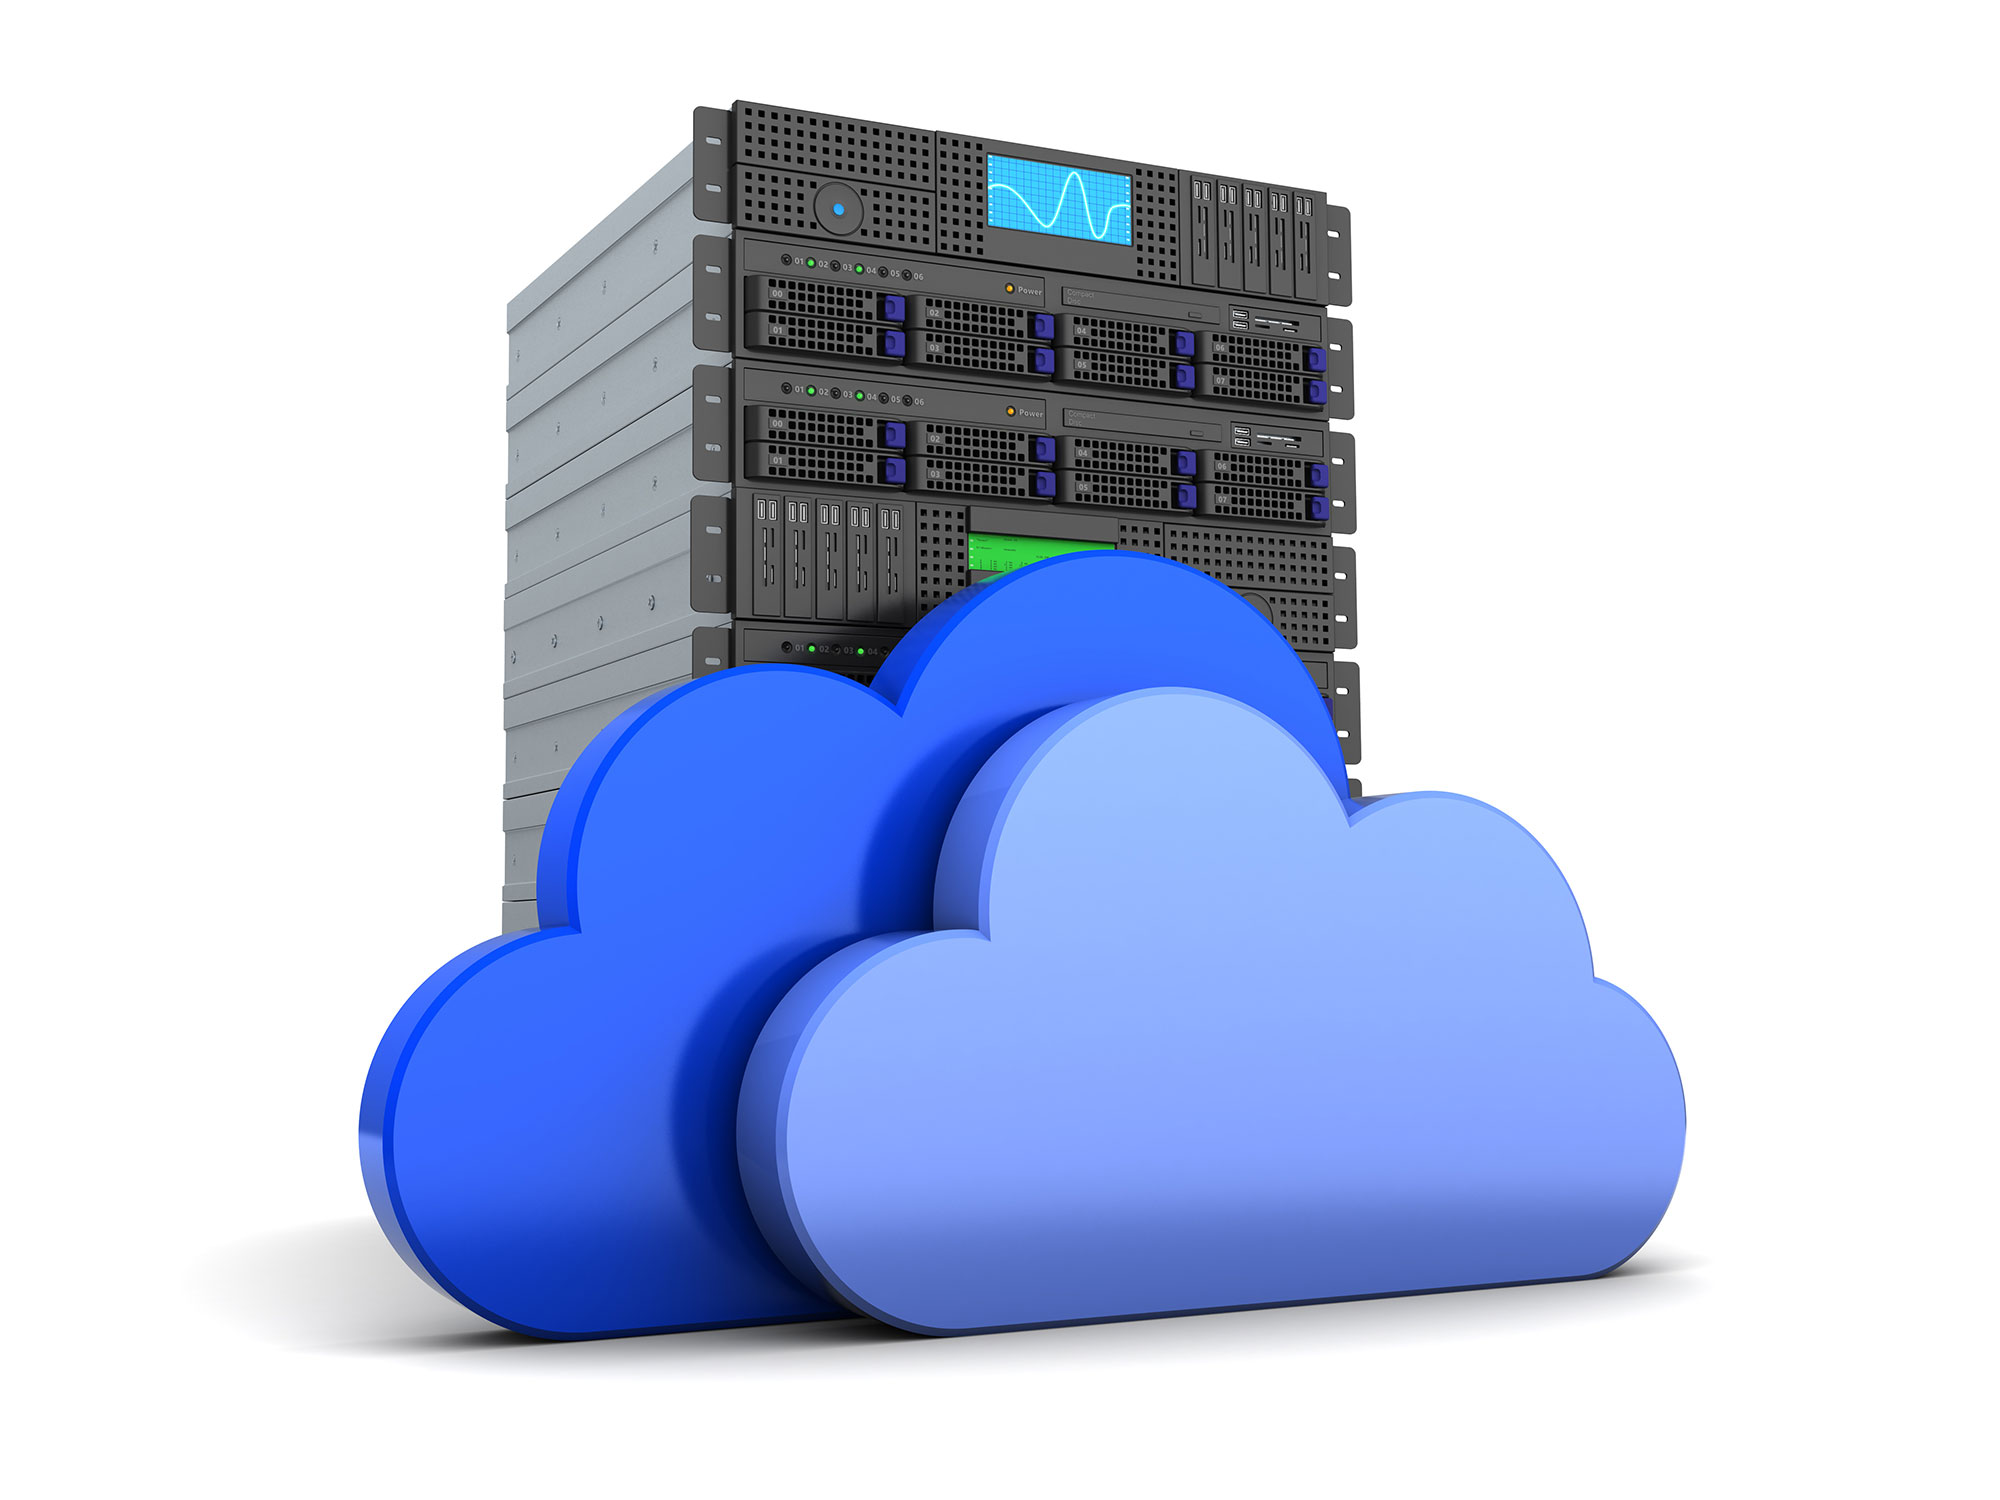 Server in cloud